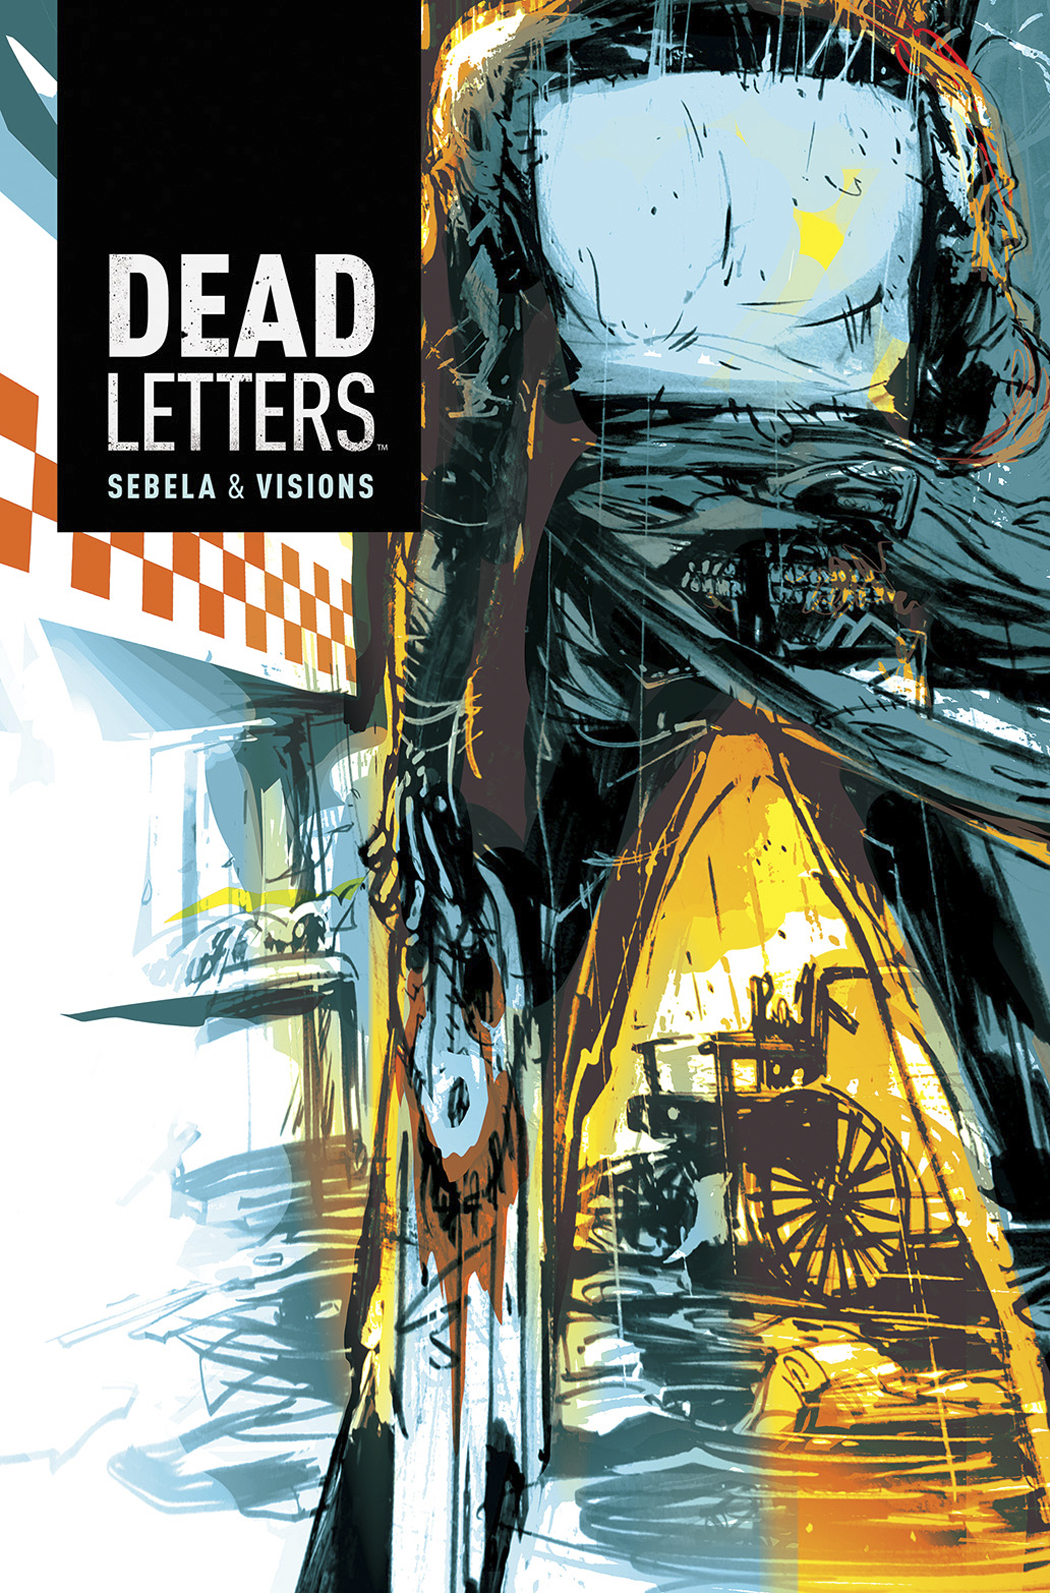 DEAD LETTERS #5